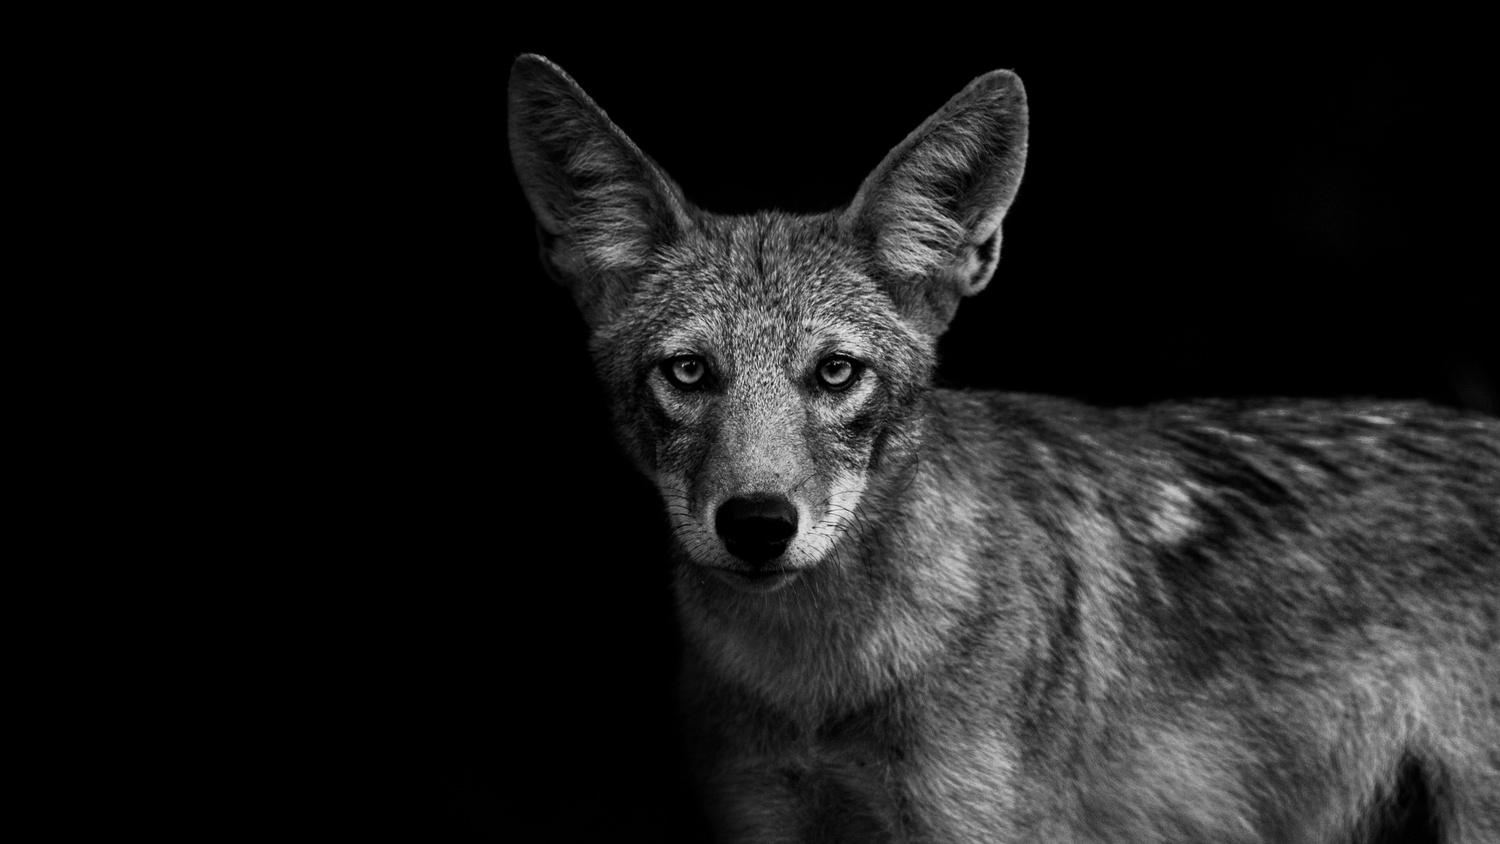 Black And White - Coyote by Kyle Rohlfing